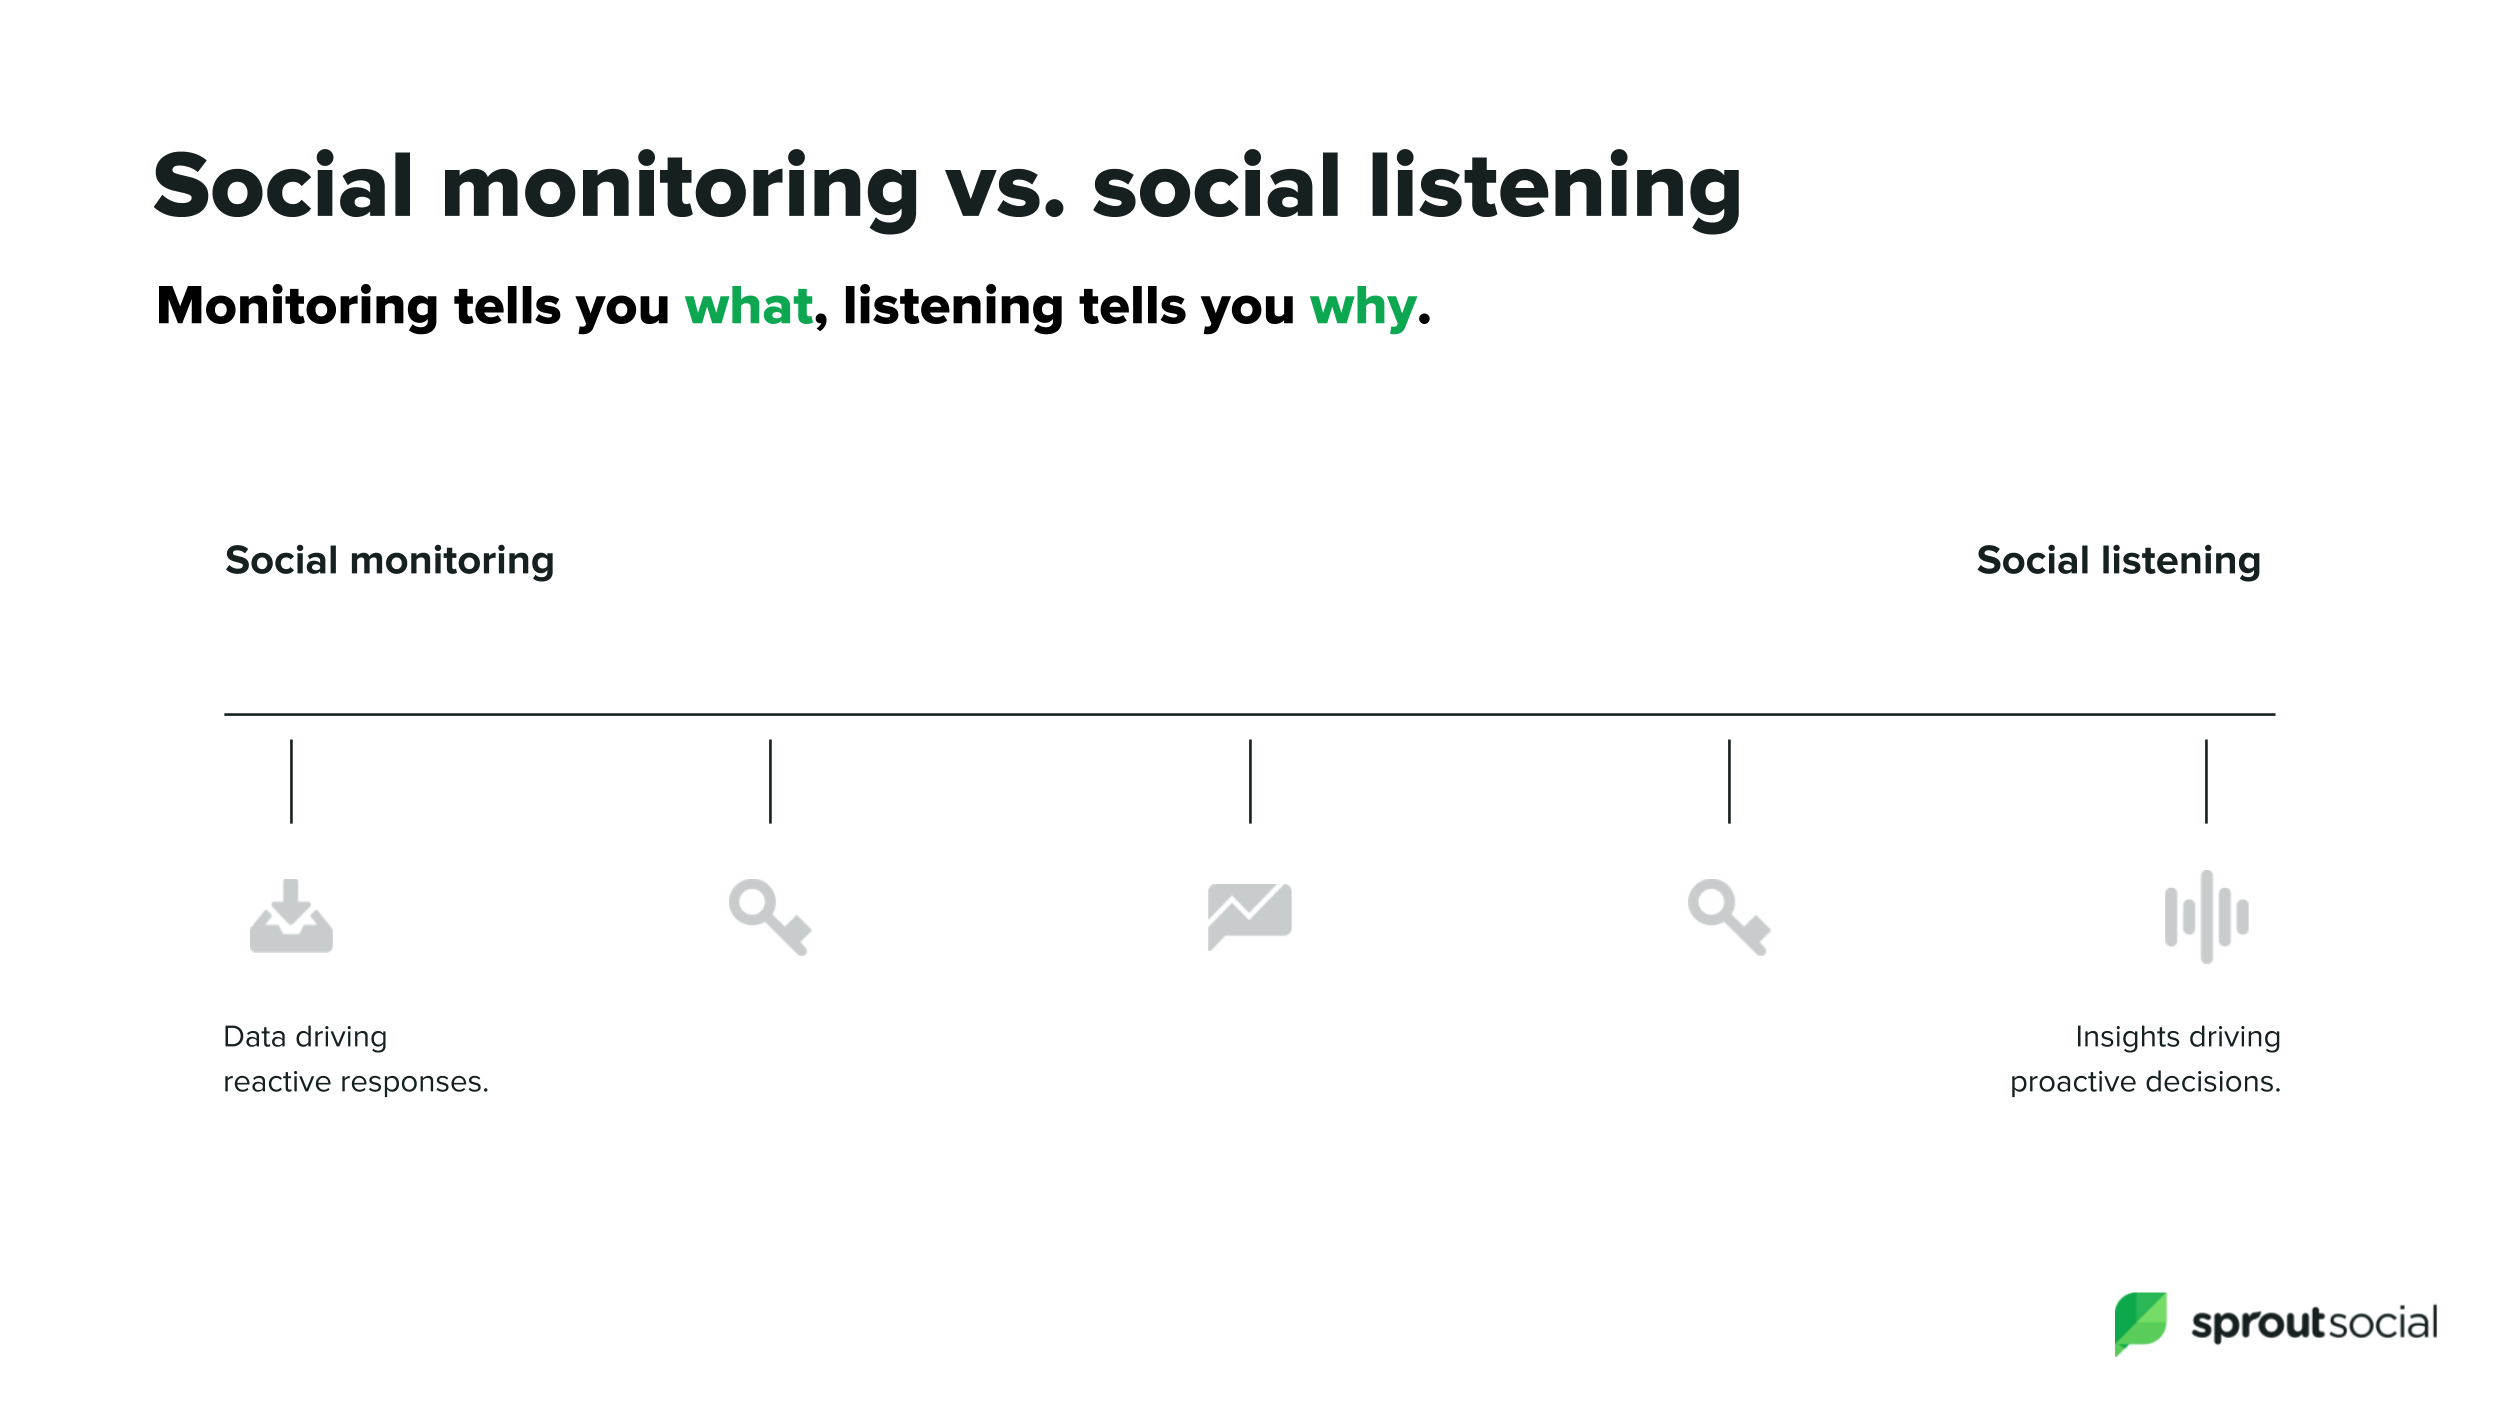 espectro do listening de redes sociais